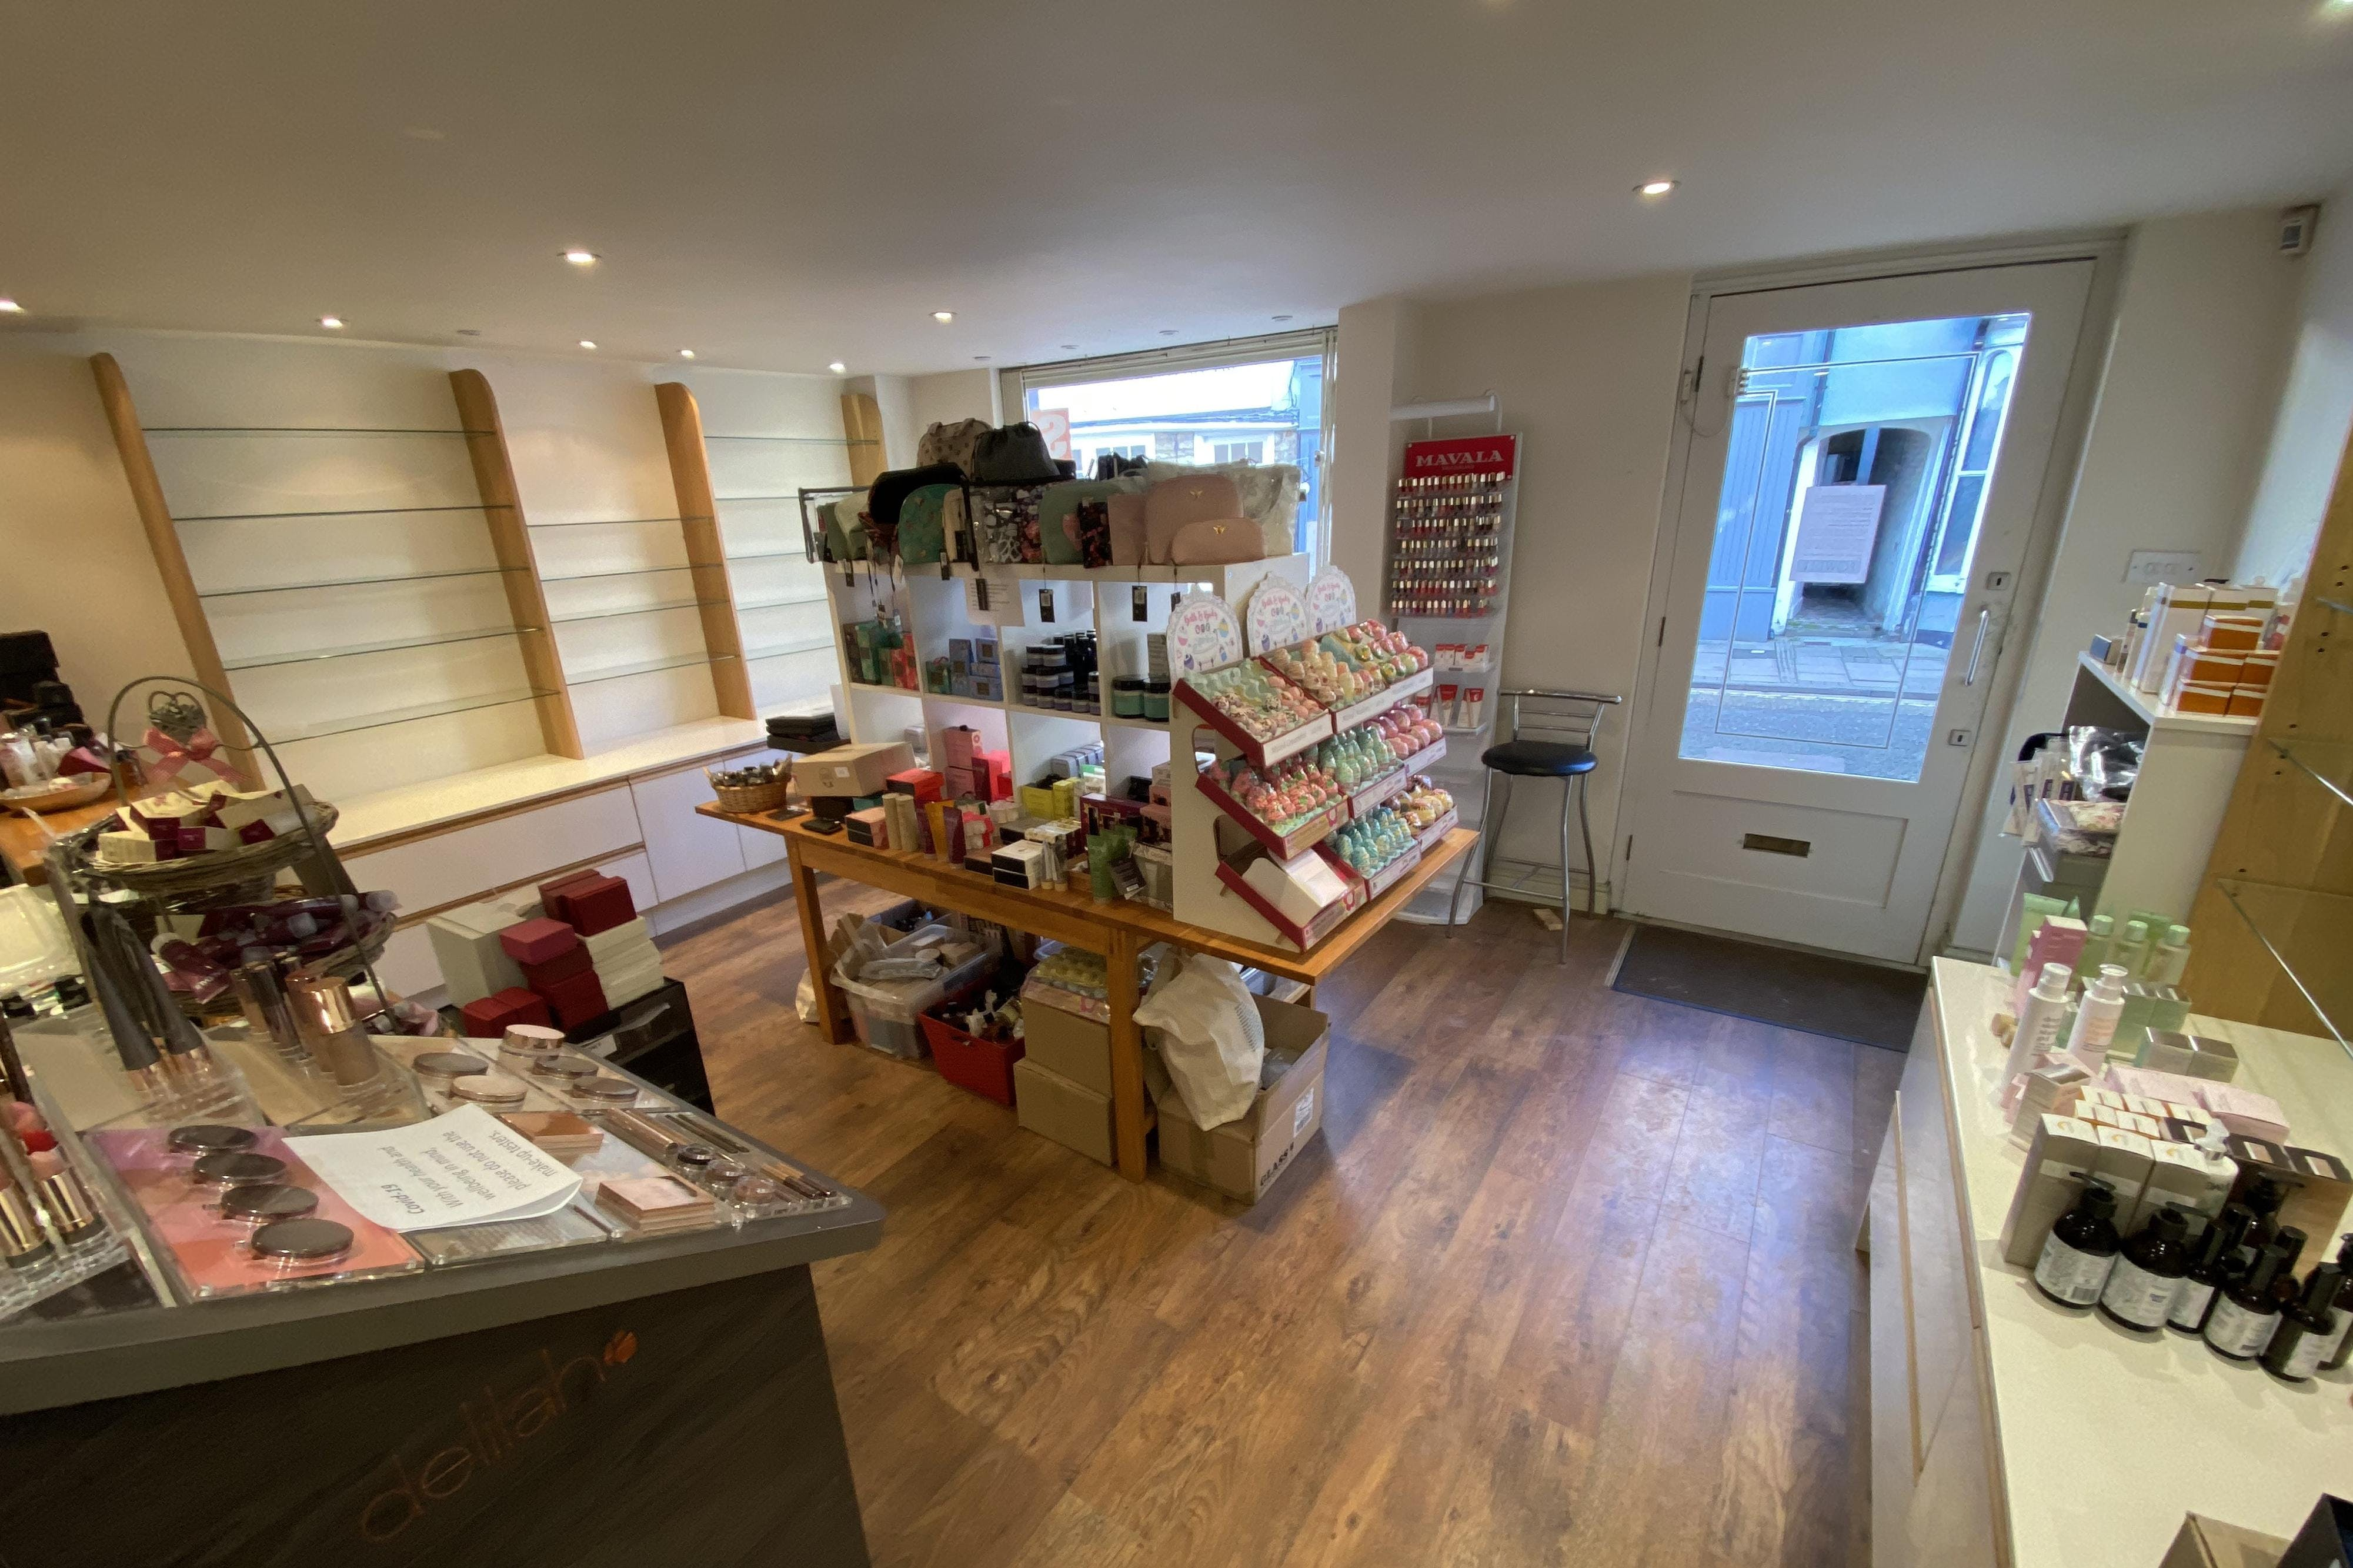 17A Buttermarket, Thame, Retail To Let - INT 4.JPG